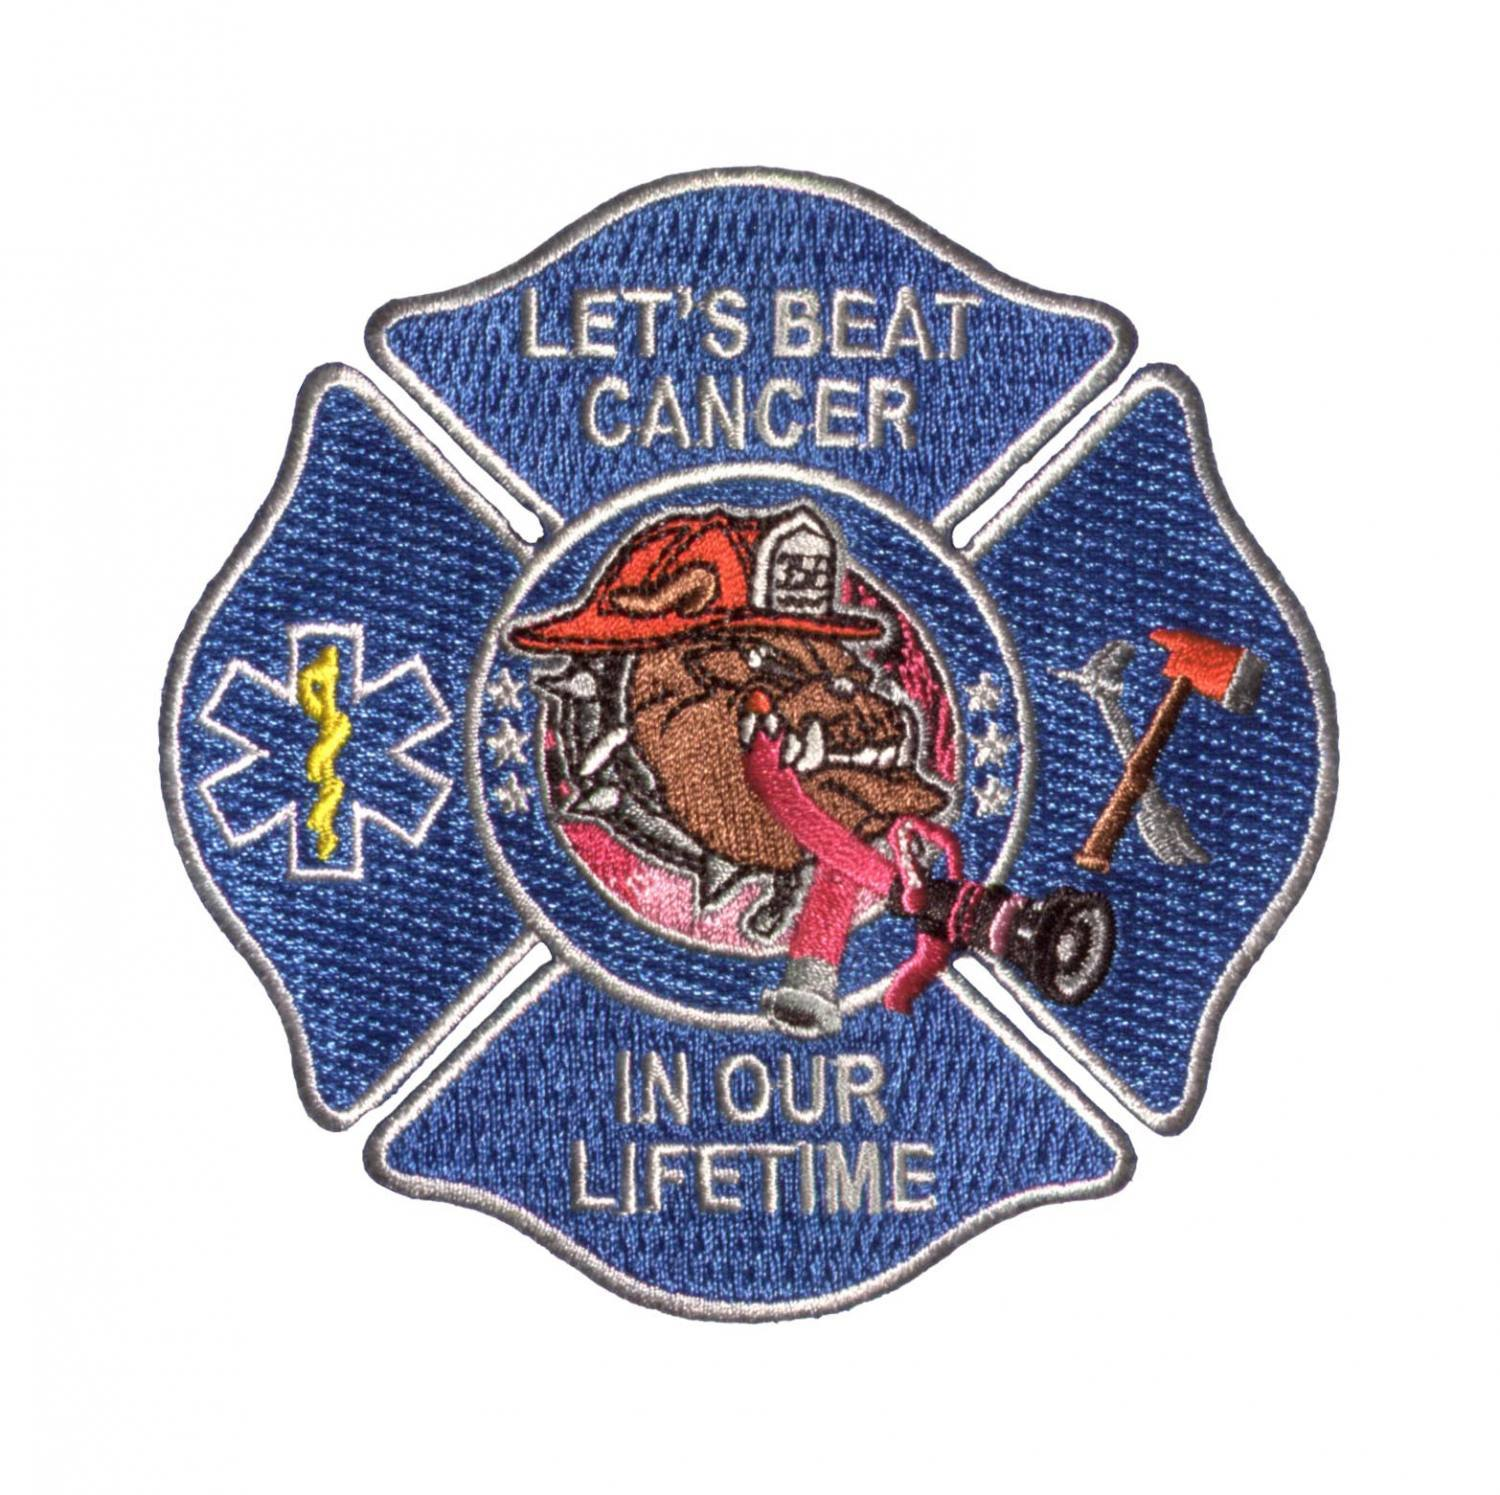 Cancer Awareness Patches